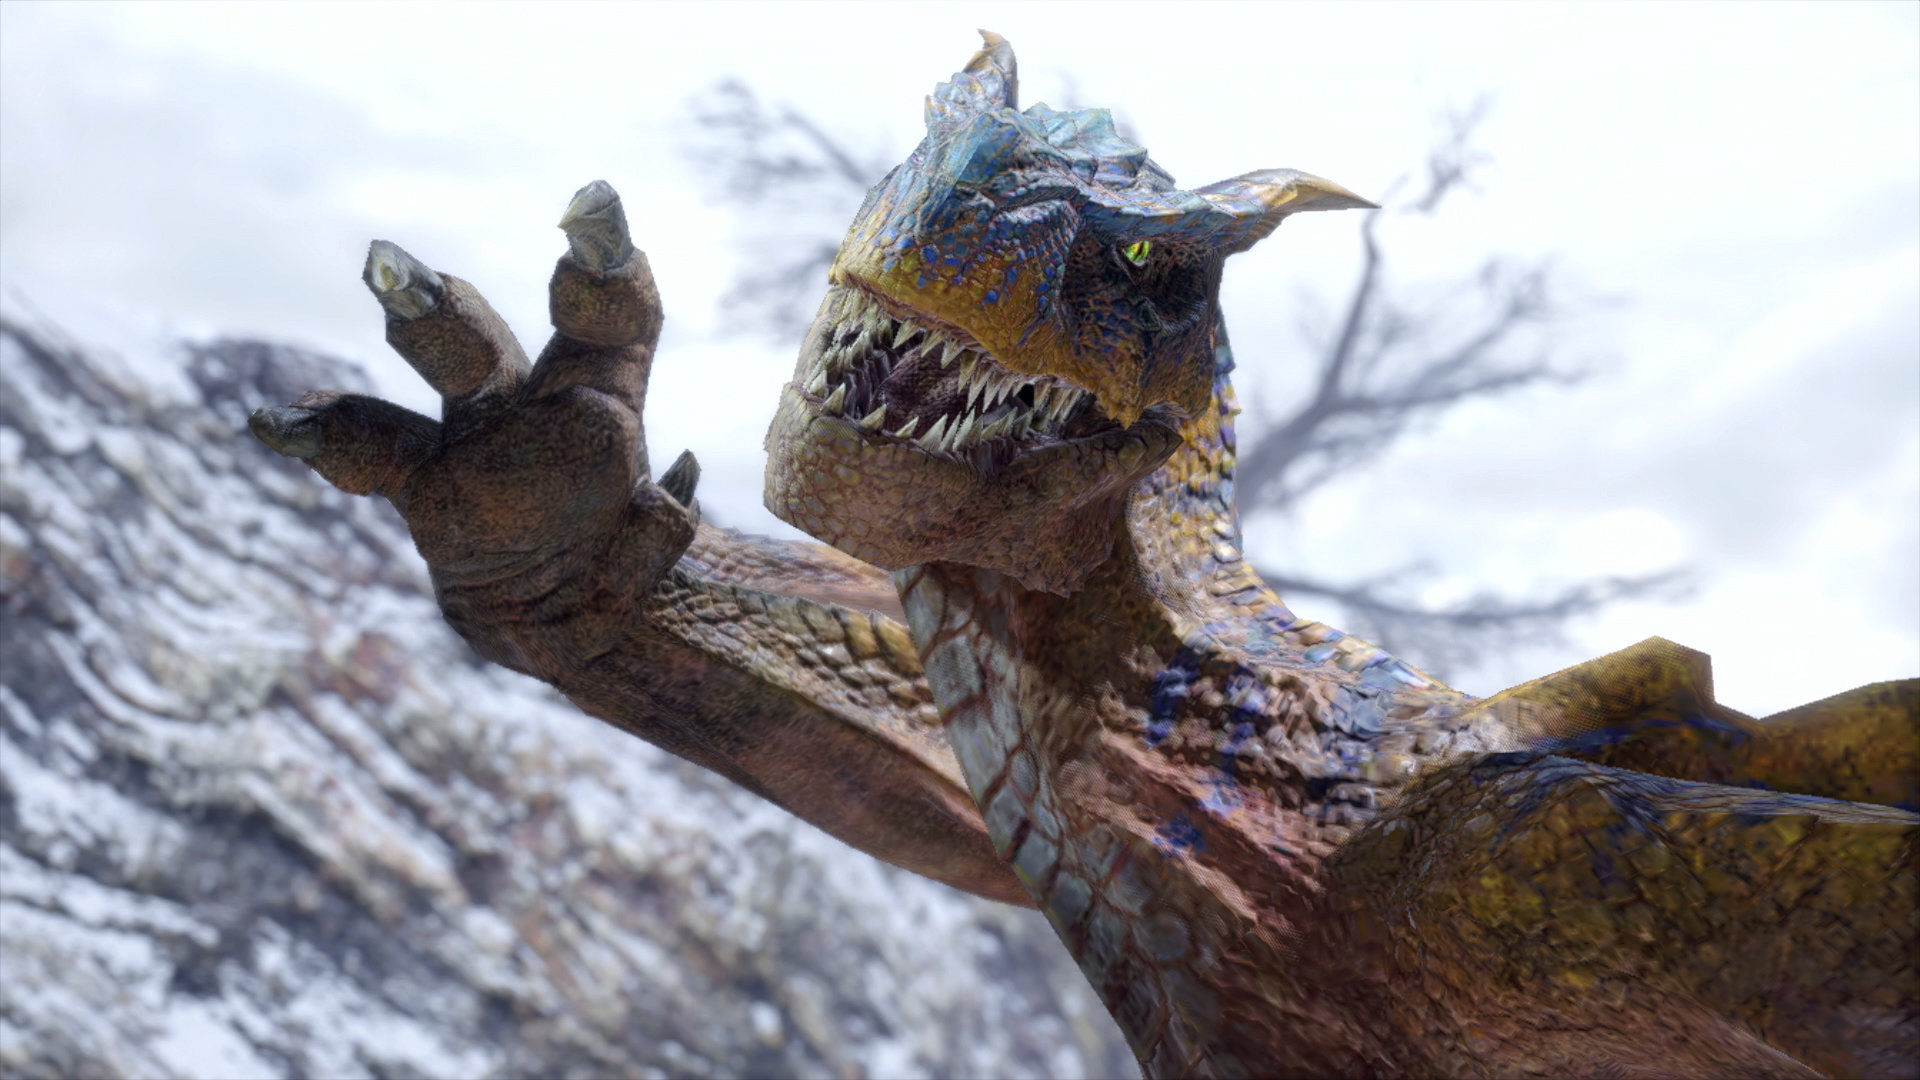 Screenshot From Monster Hunter Rise Featuring A Dinosaur Getting Ready to Attack